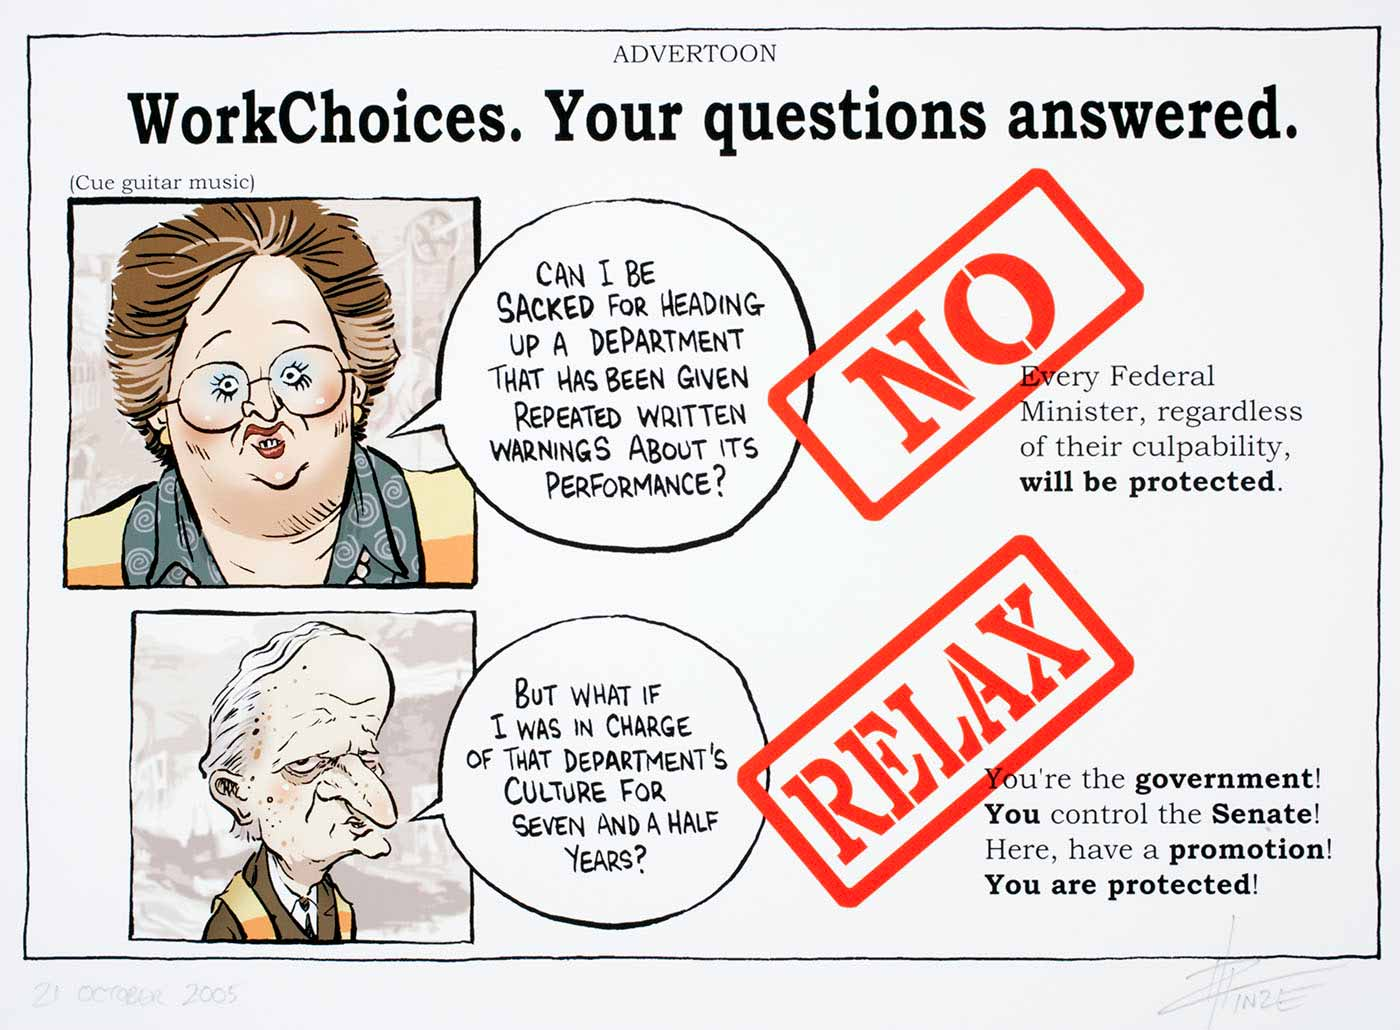 Cartoon of a WorkChoices advertising campaign with Amanda Vanstone and Philip Ruddock asking questions about whether they can be sacked. The answer is 'No, Relax - every Federal Minister is protected regardless of their culpability and rewarded with a promotion' - click to view larger image